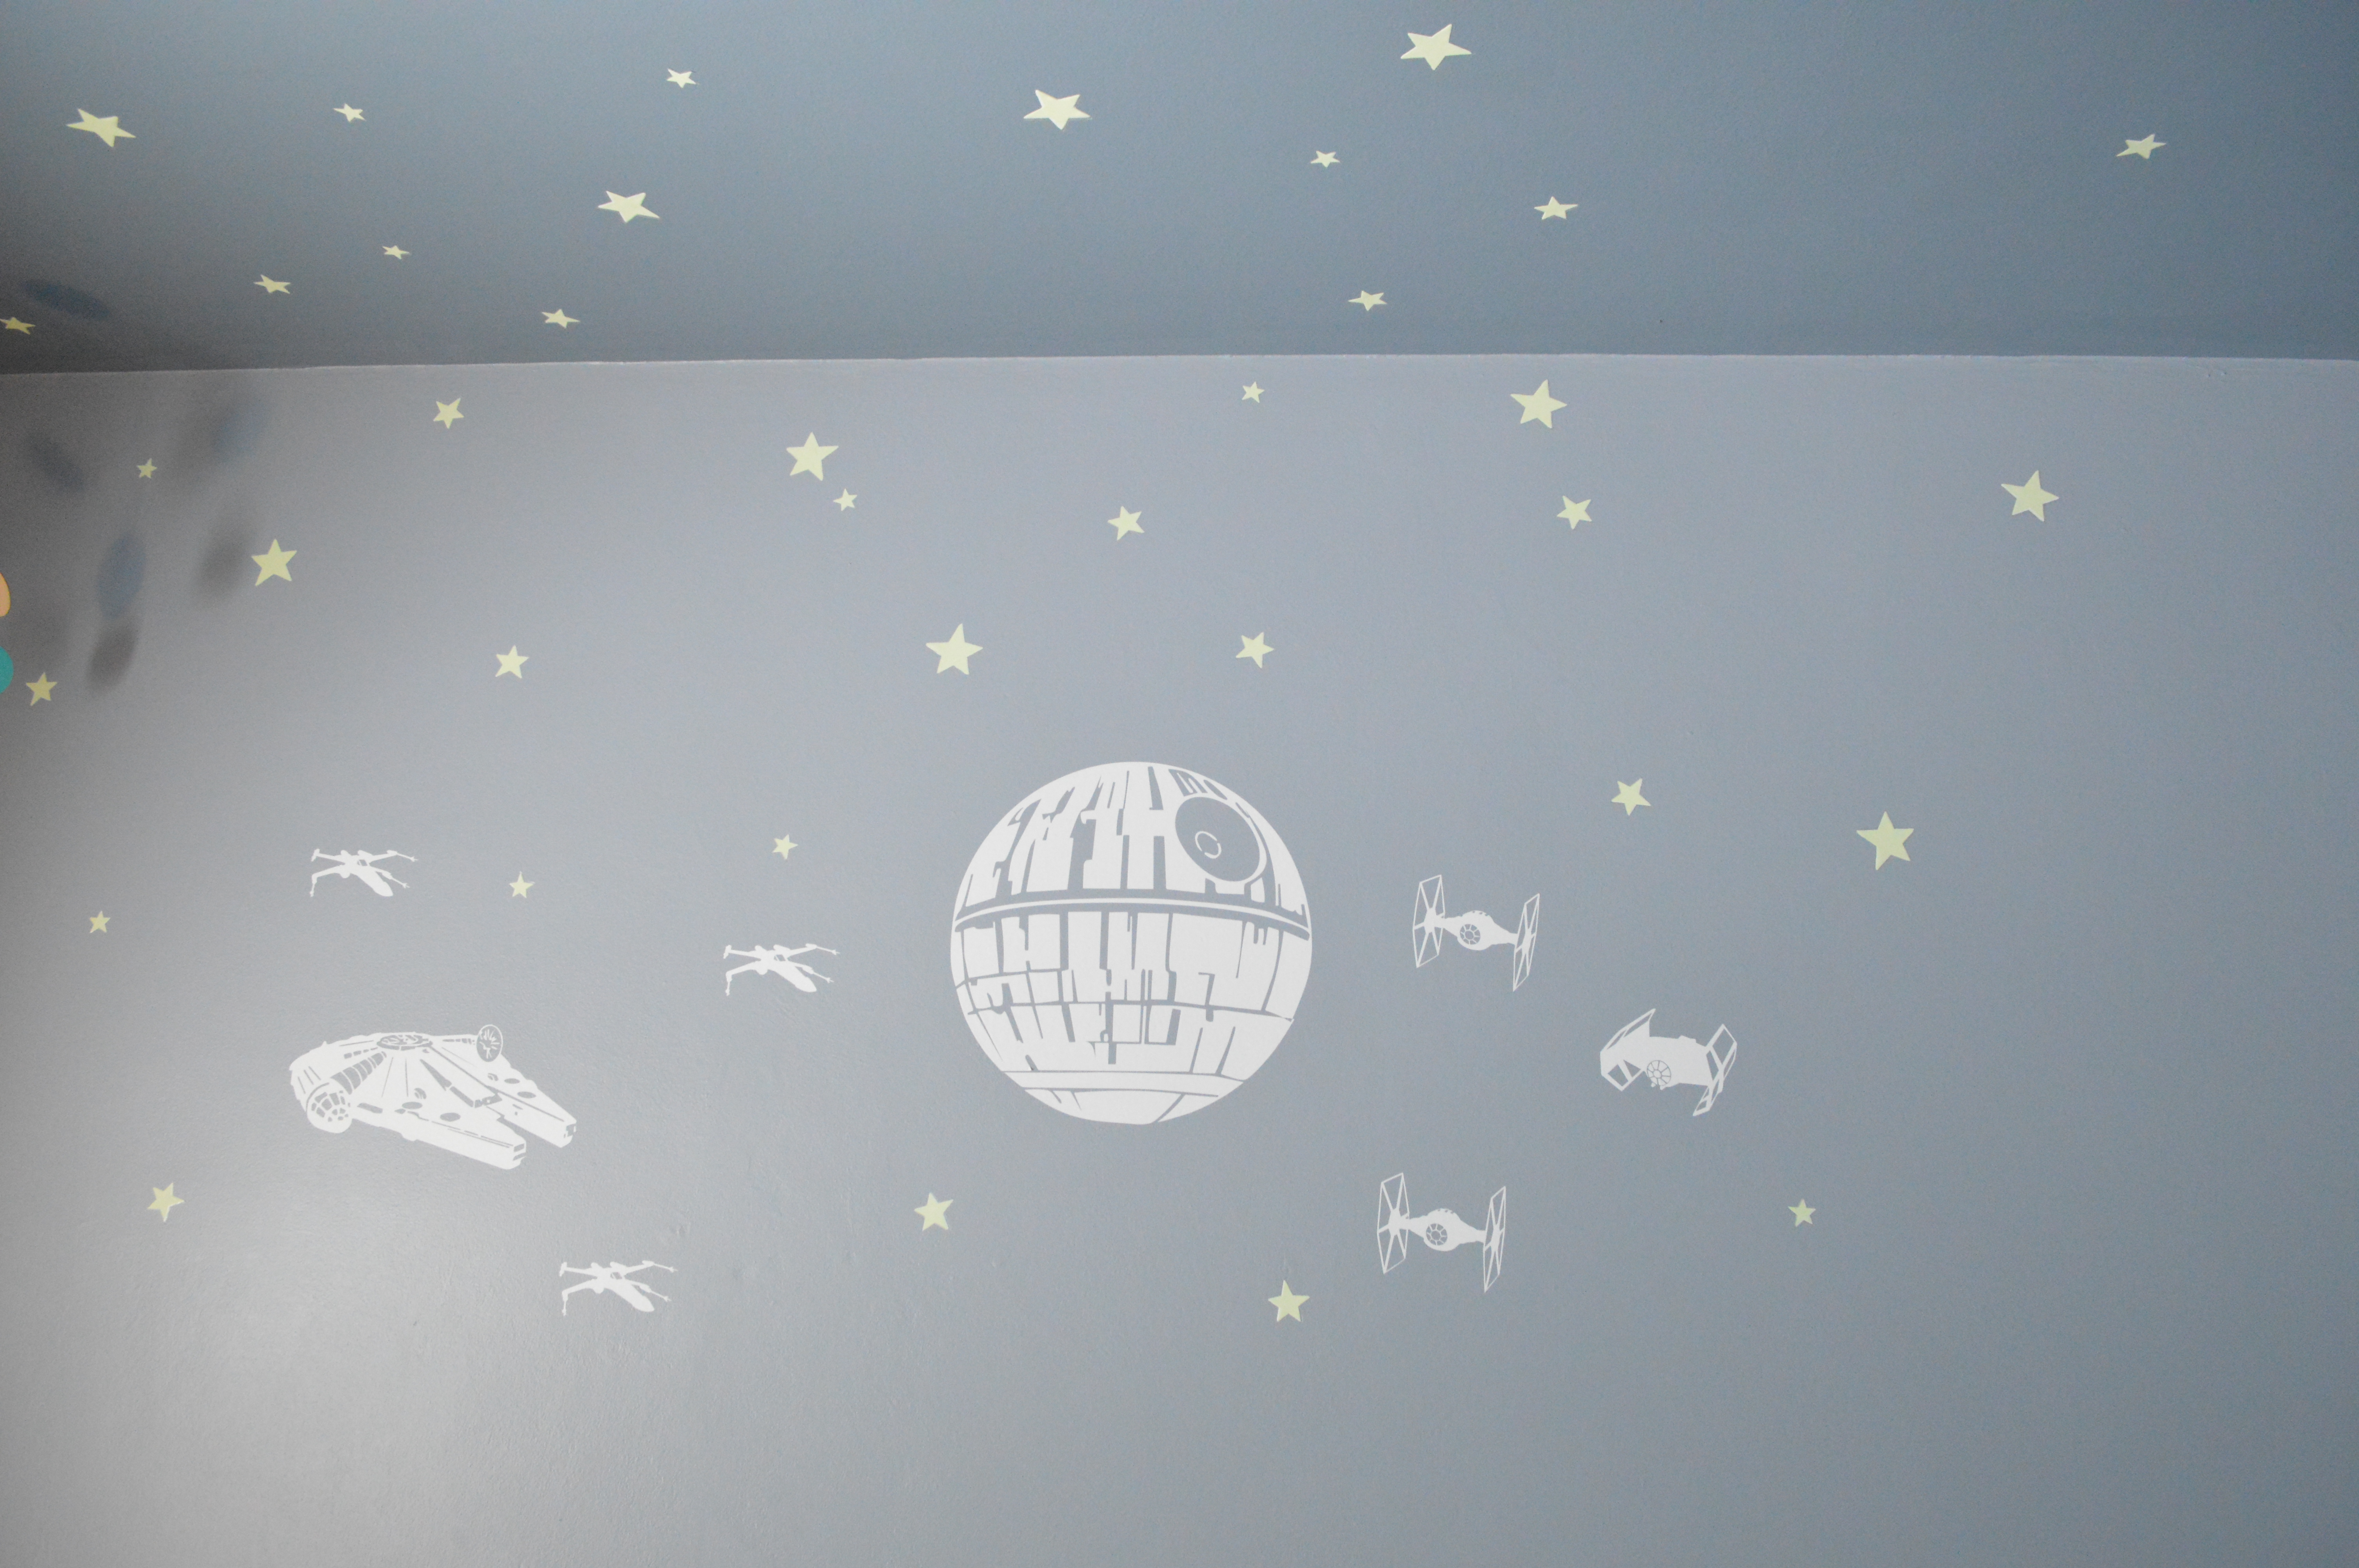 we Got These Star Wars Wall